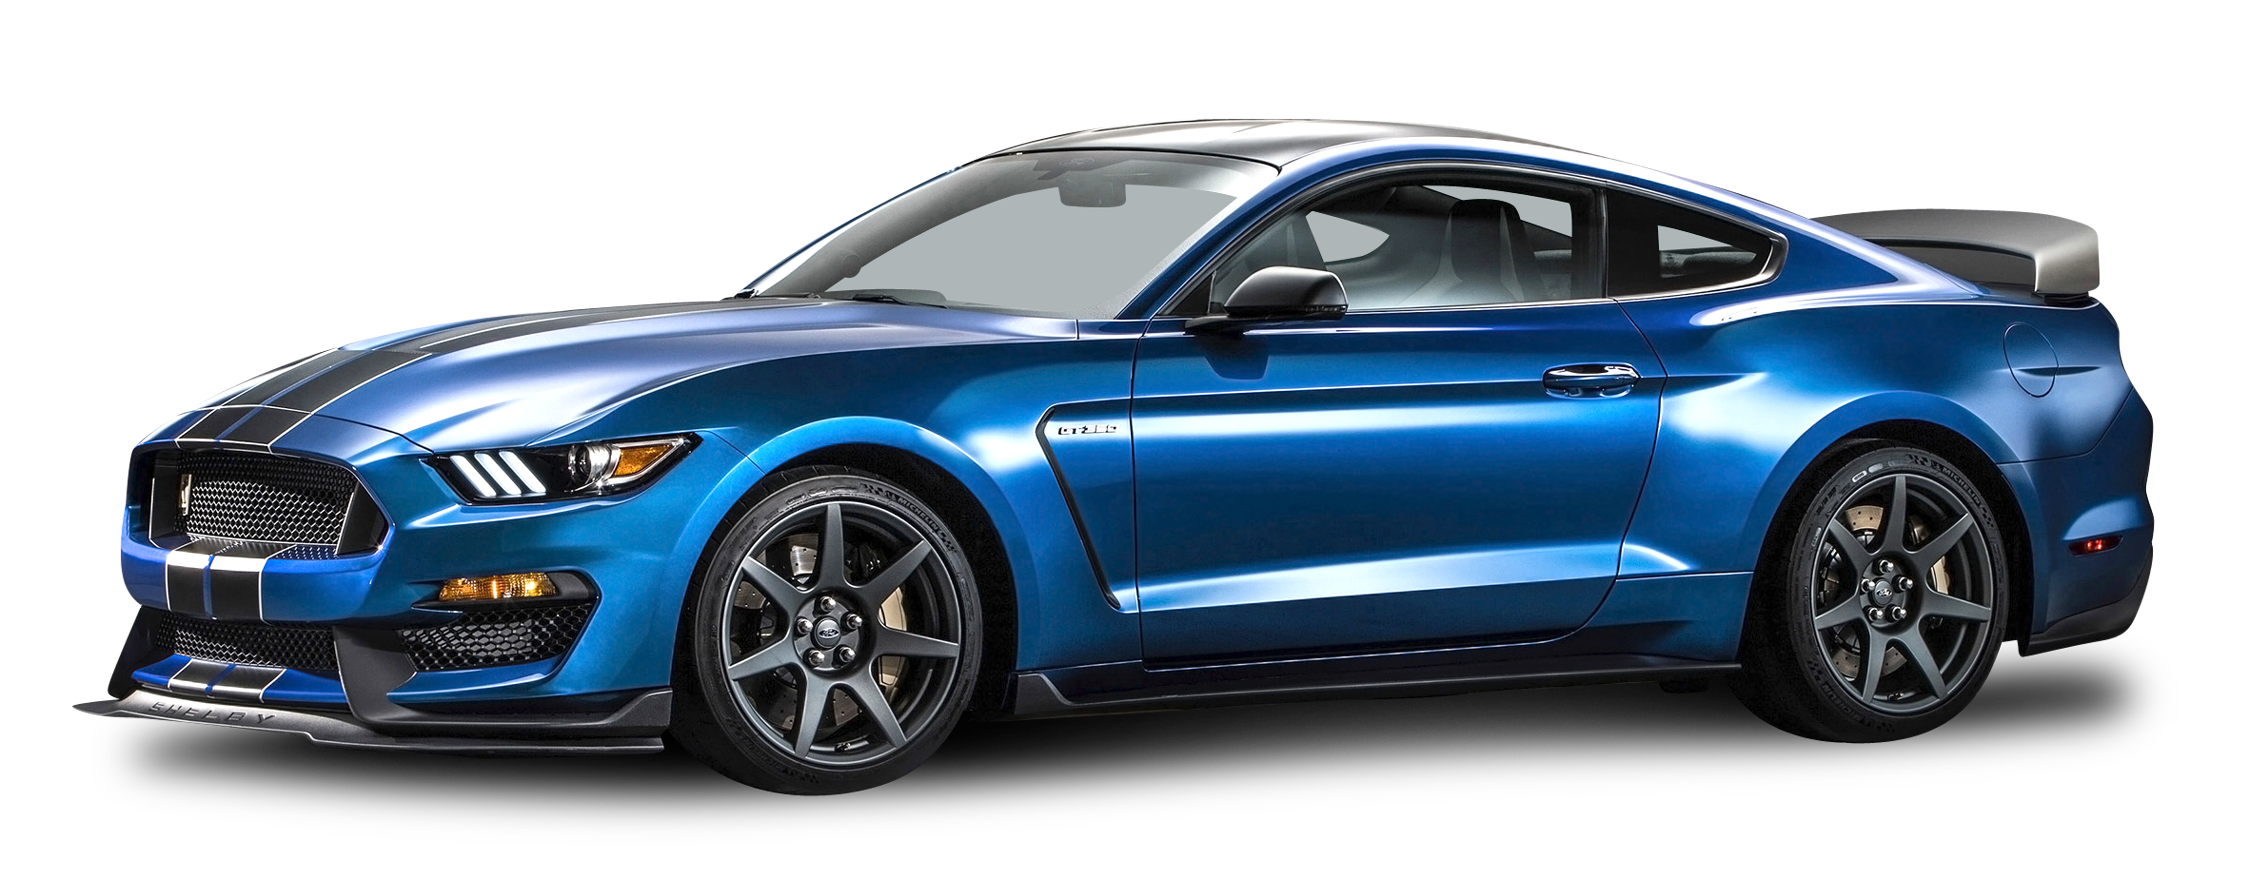 Ford Mustang Png Image Ford Shelby Ford Mustang Shelby Gt350r